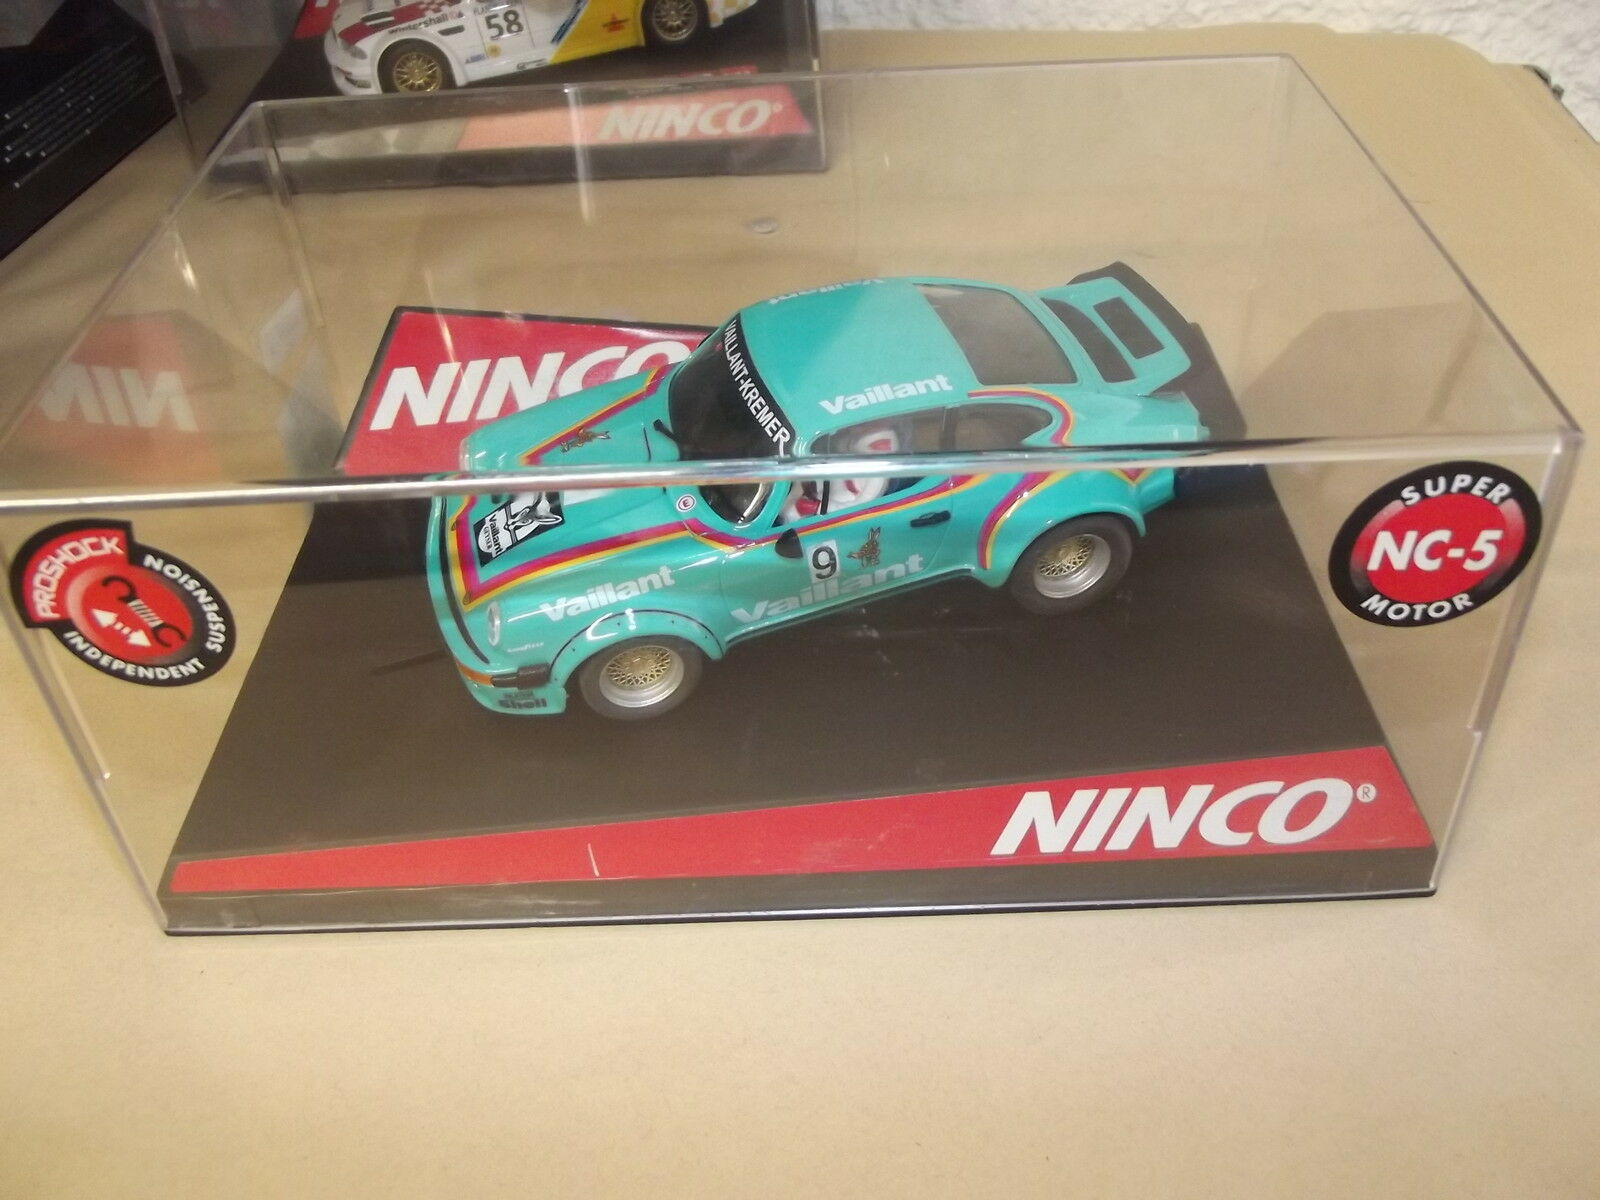 PORSCHE 934-VALLANT-VAILLANT-SUPERM MOTOR NC5-50331-SLOT CAR-NINCO-1 32-E26